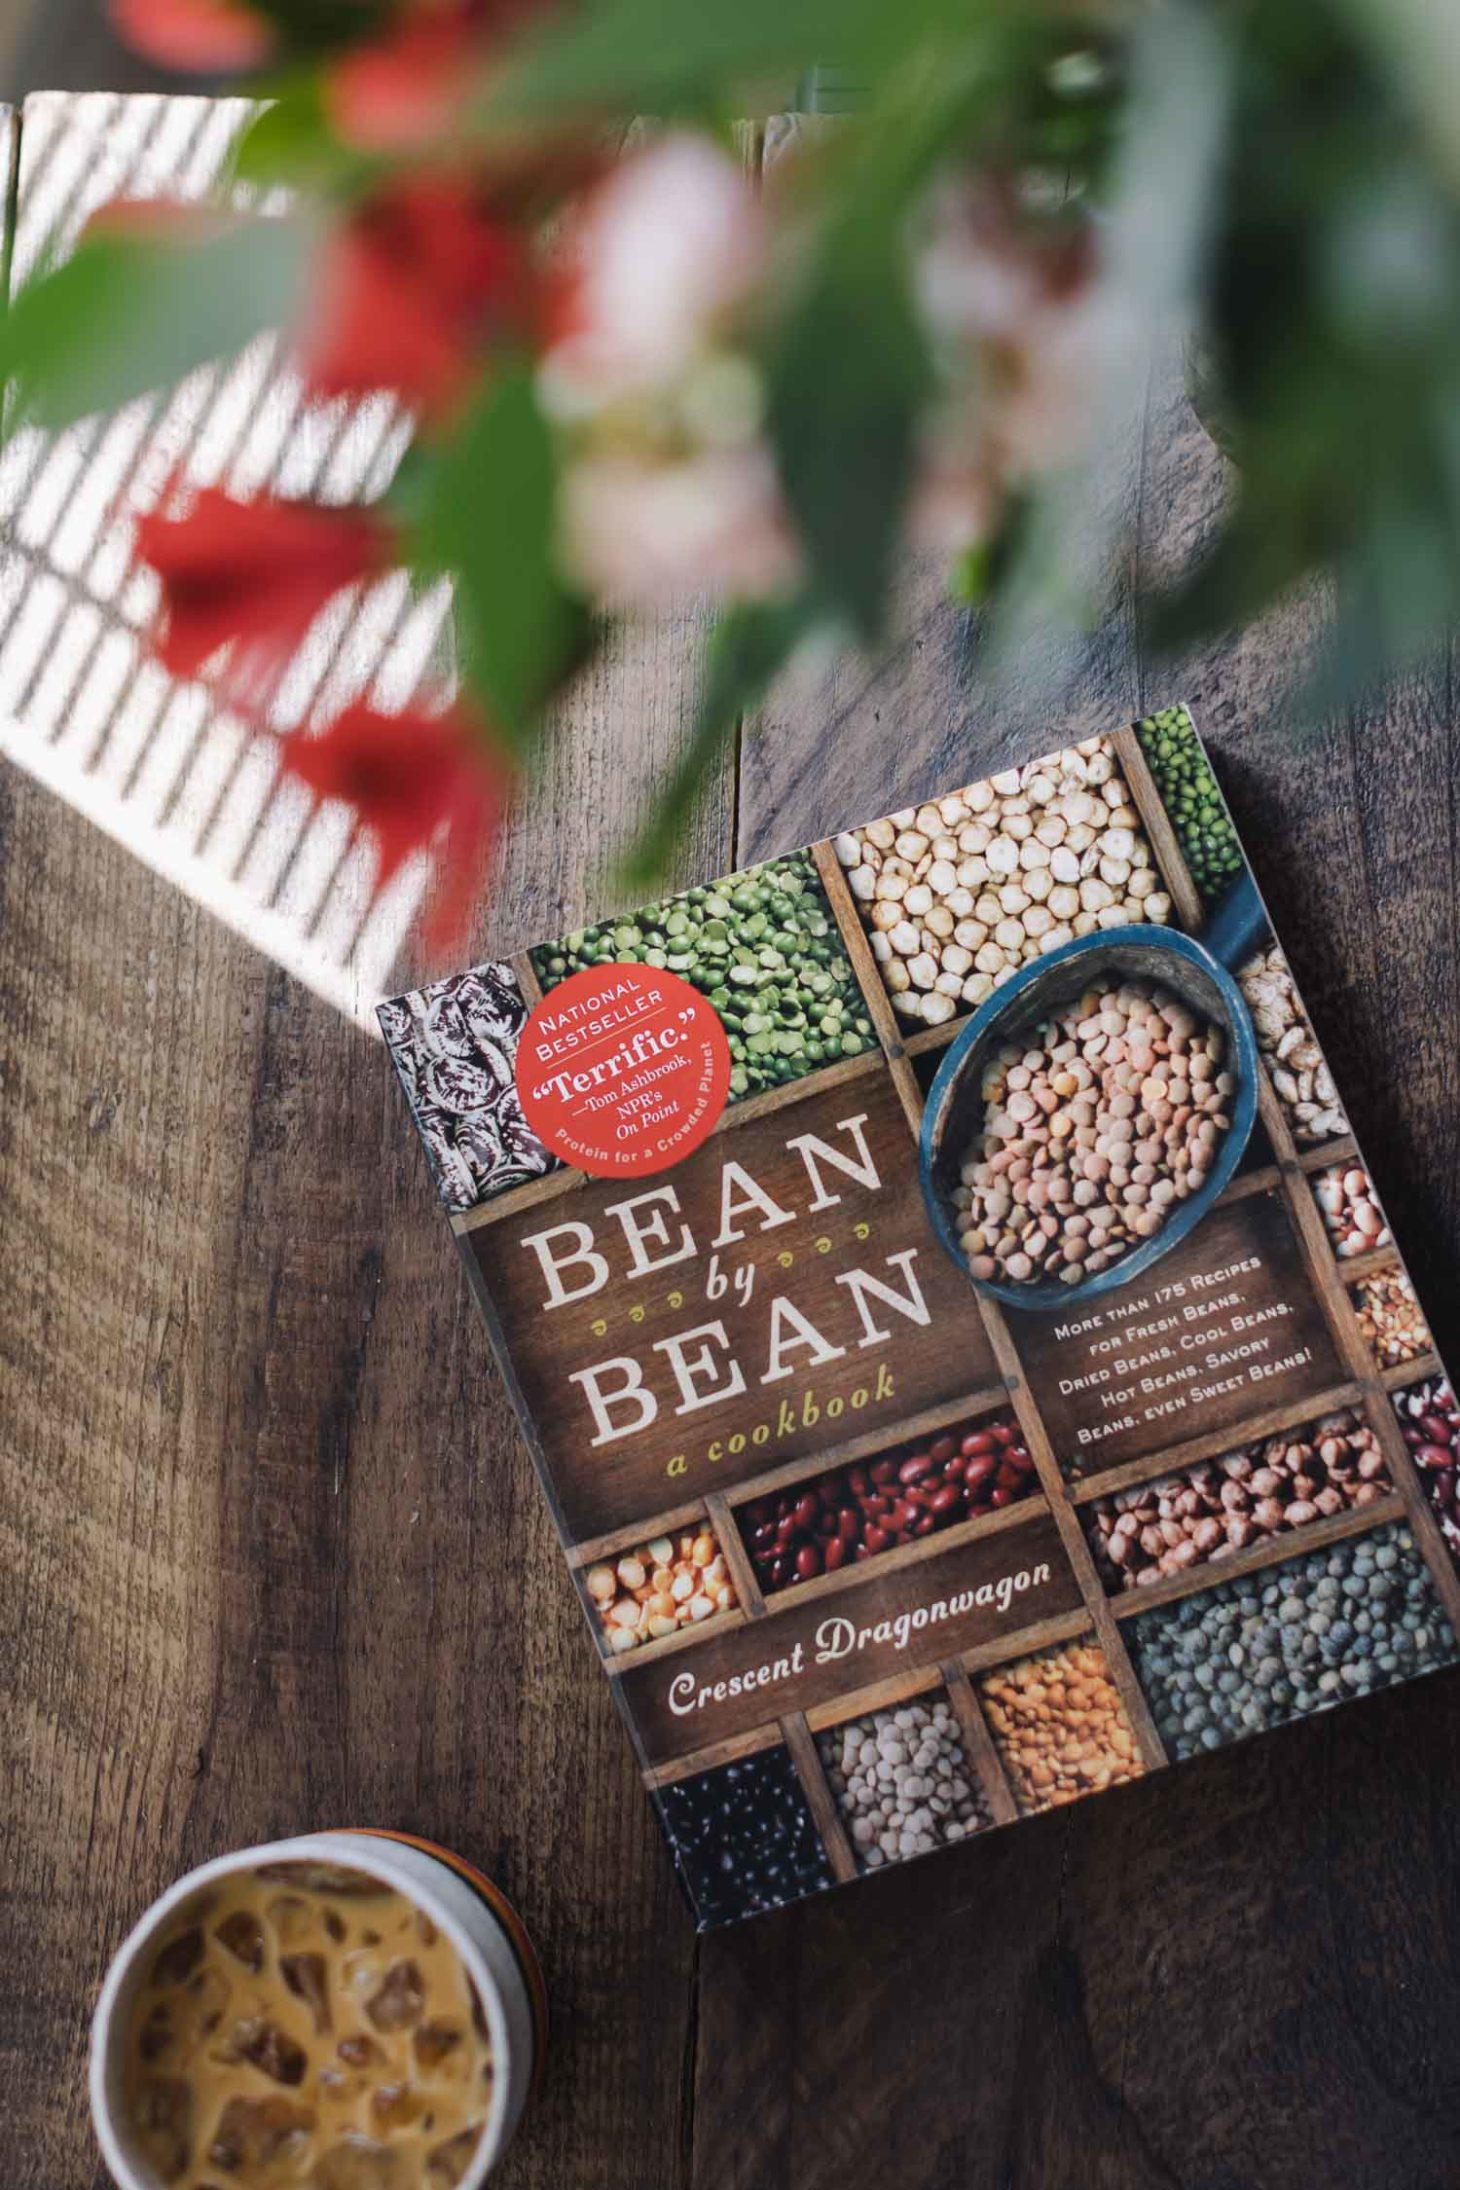 Bean By Bean: A Cookbook: More than 175 Recipes for Fresh Beans, Dried Beans, Cool Beans, Hot Beans, Savory Beans, Even Sweet Beans by Crescent Dragonwagon